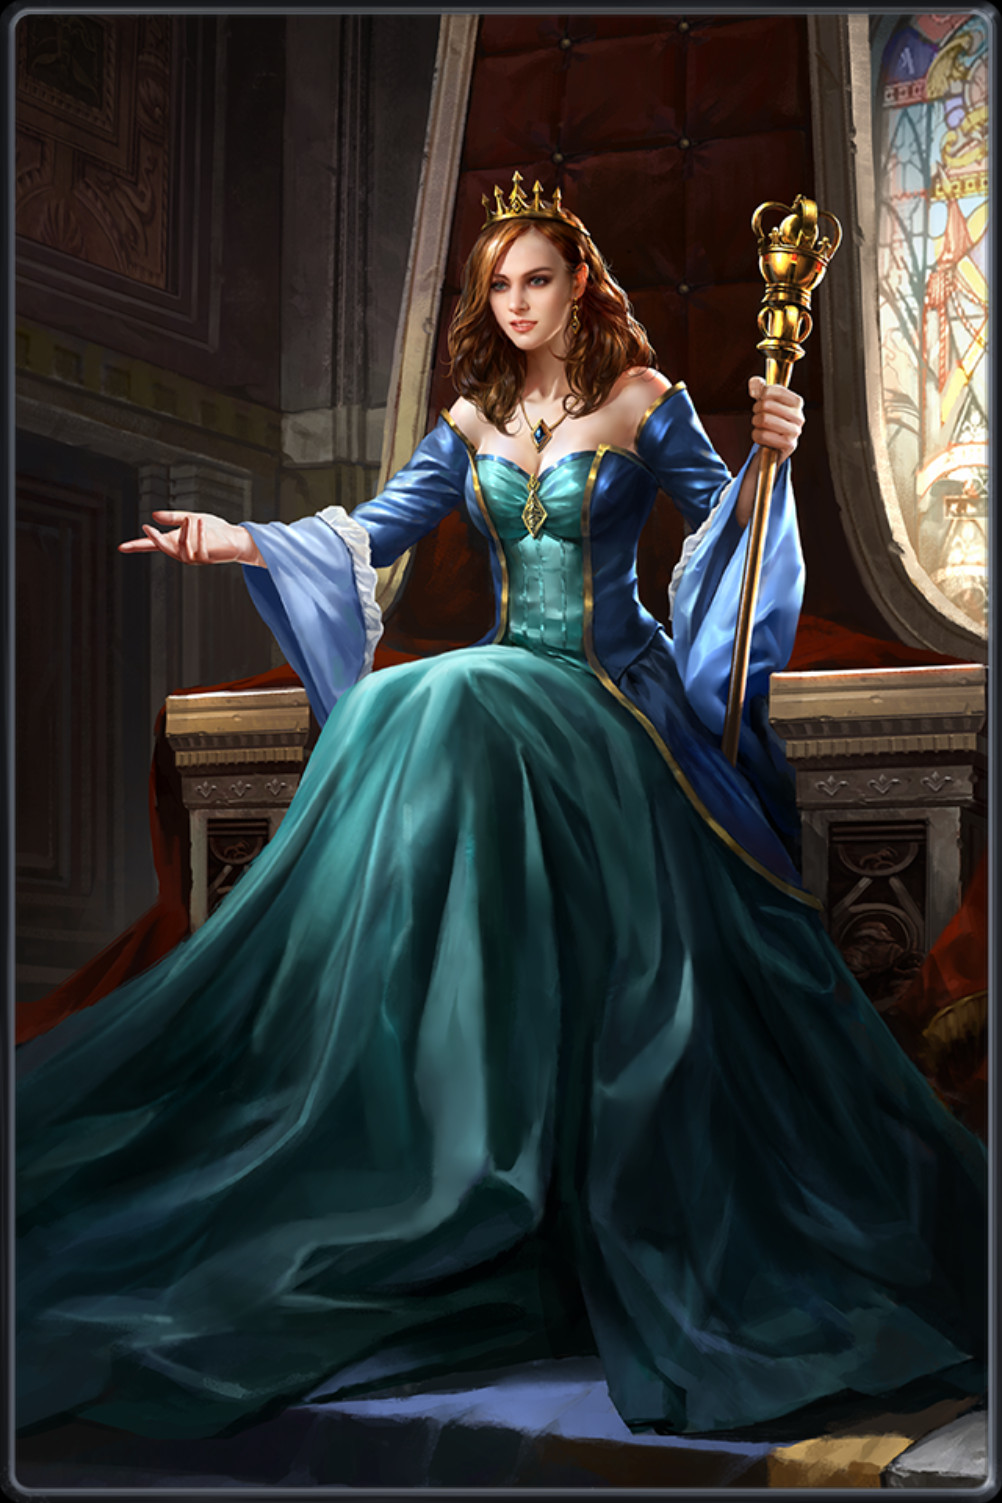 Queen Guinevere | Heroes of Camelot Wiki | FANDOM powered by Wikia